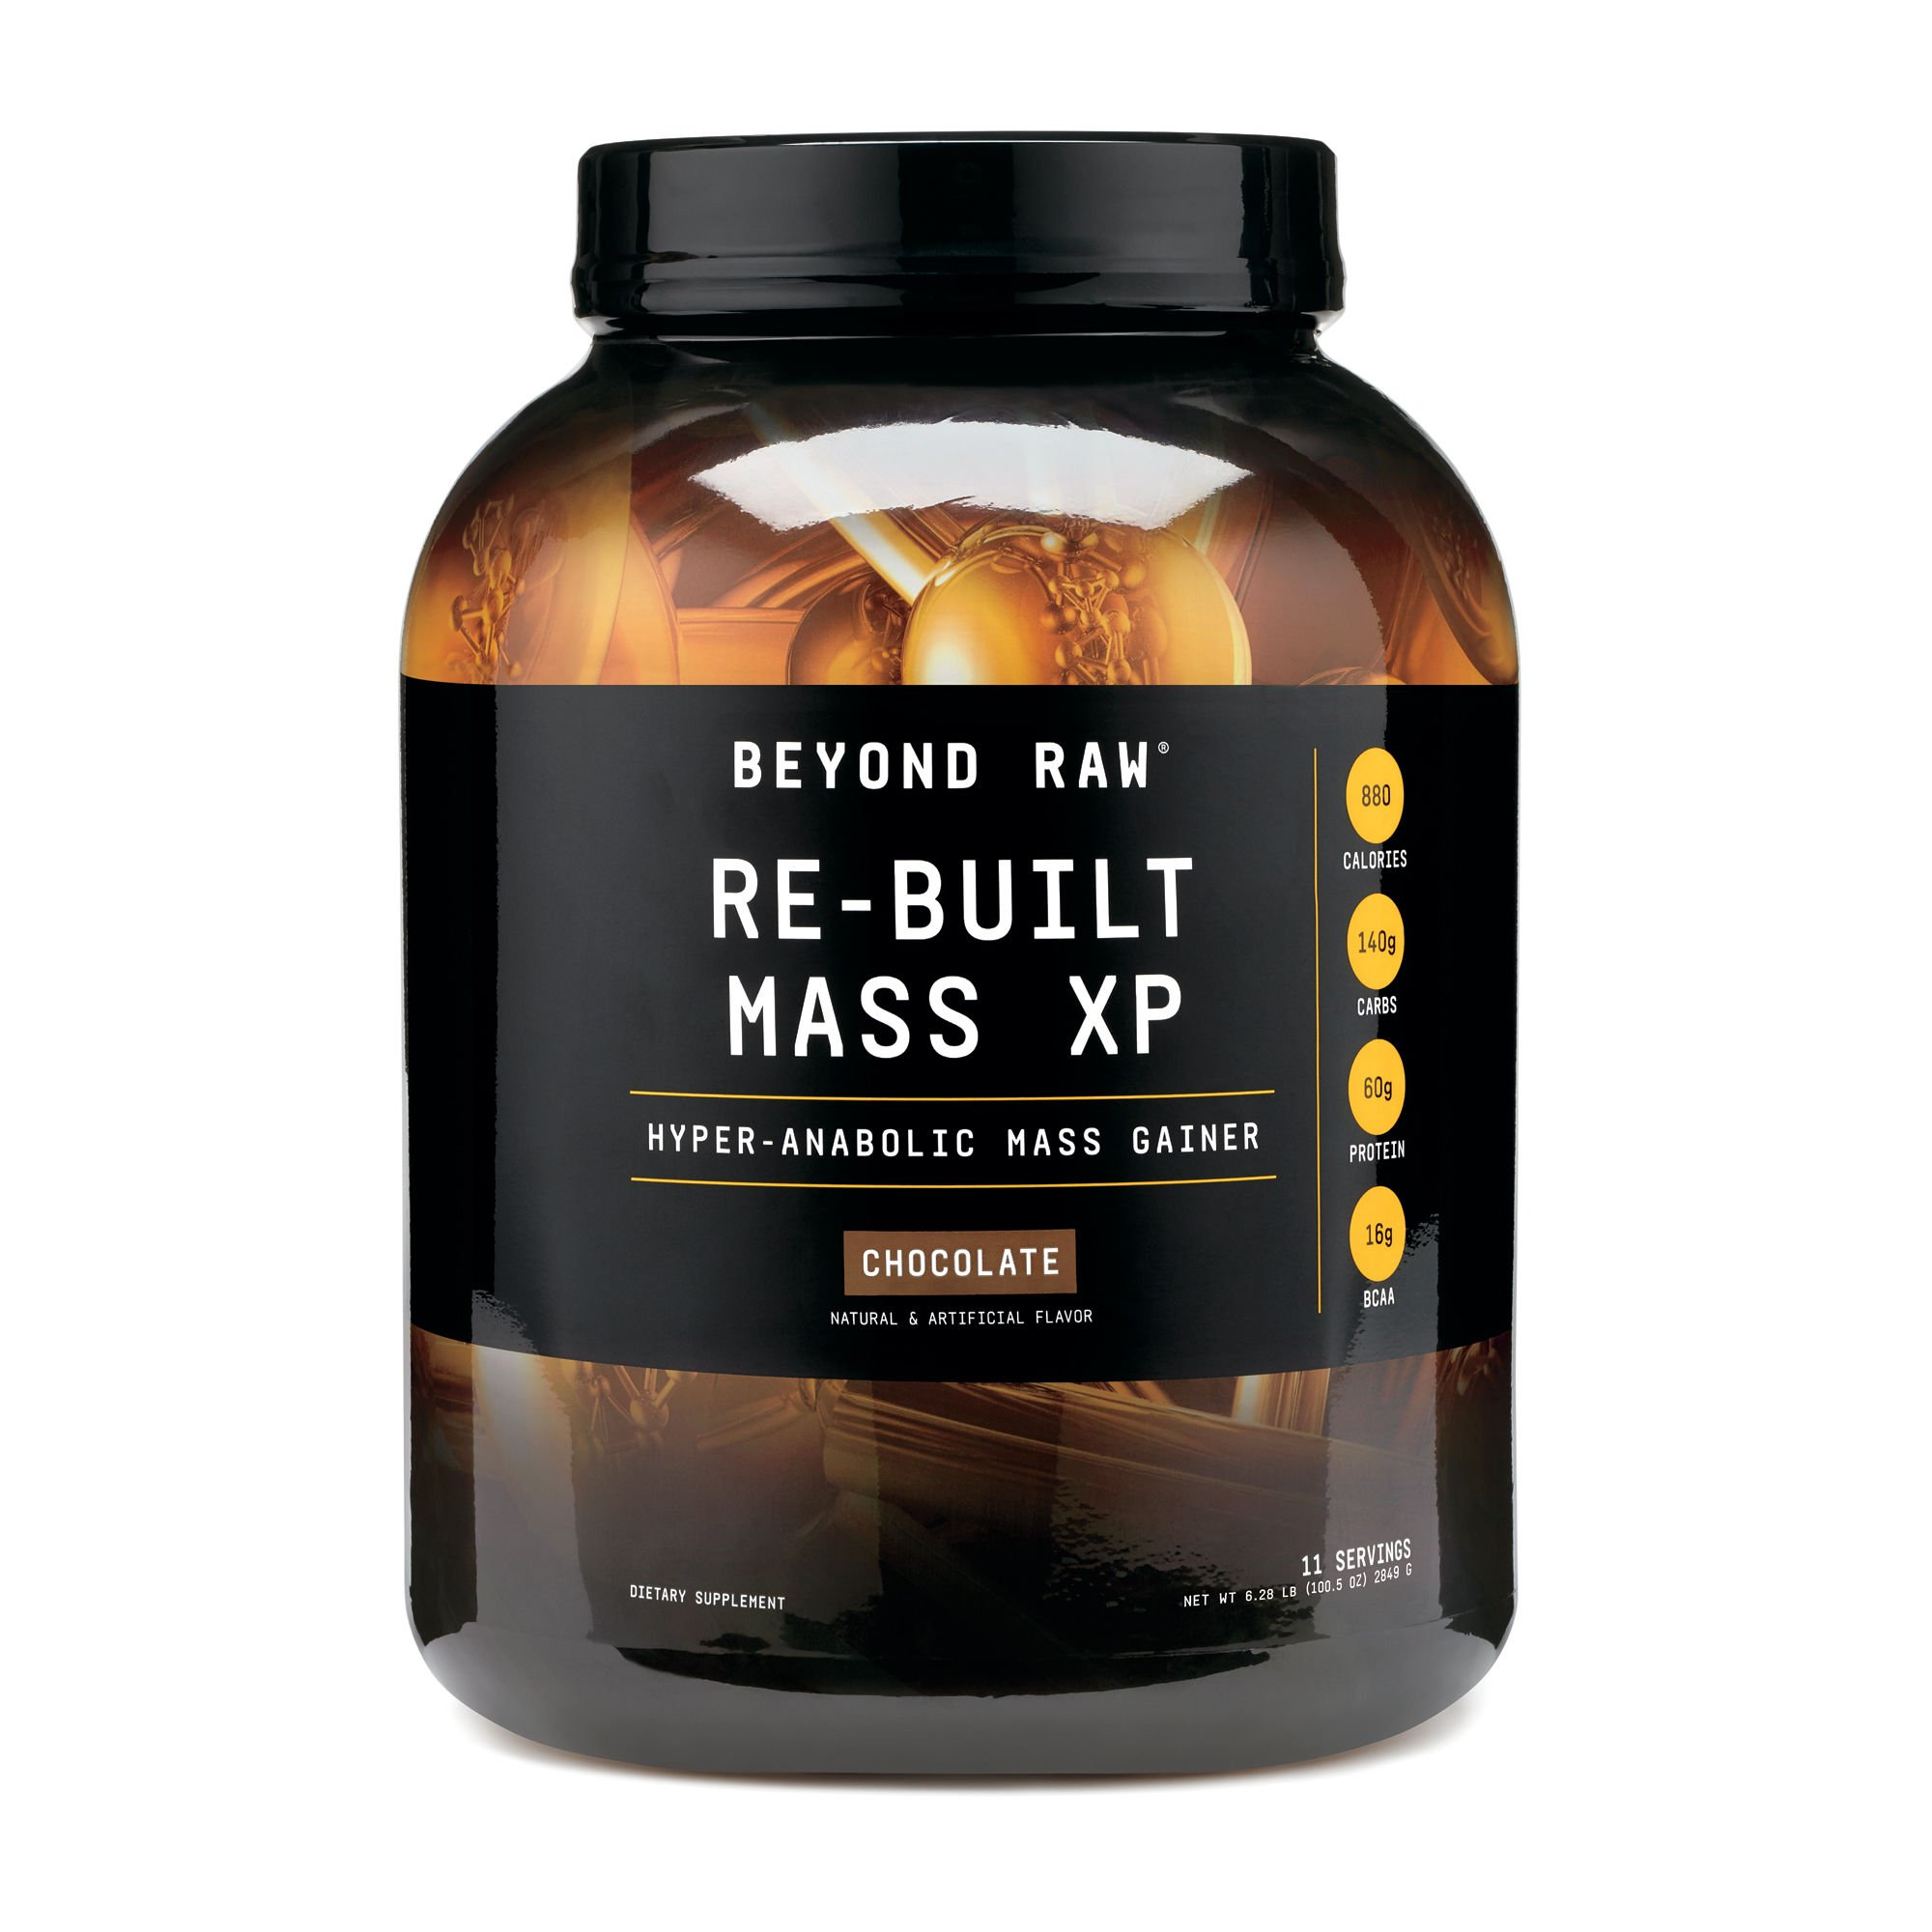 Beyond Raw Re-Built Mass XP Chocolate, 6 lbs, Contains 880 Calories, 140g Carbohydrates and 60g Protein Per Serving